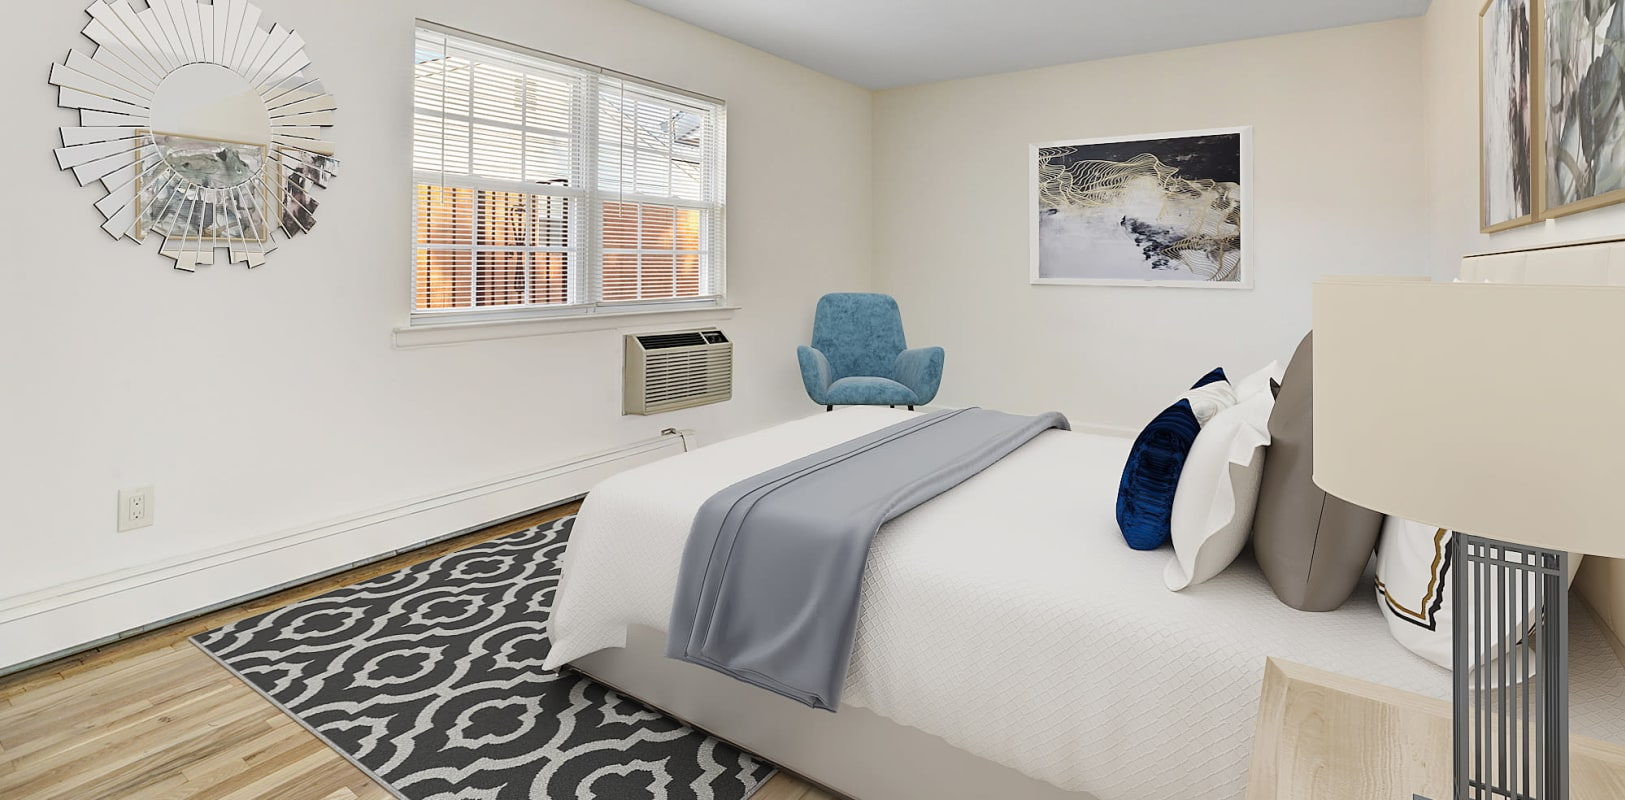 Bedroom at Park Lane Apartments in Little Falls, New Jersey